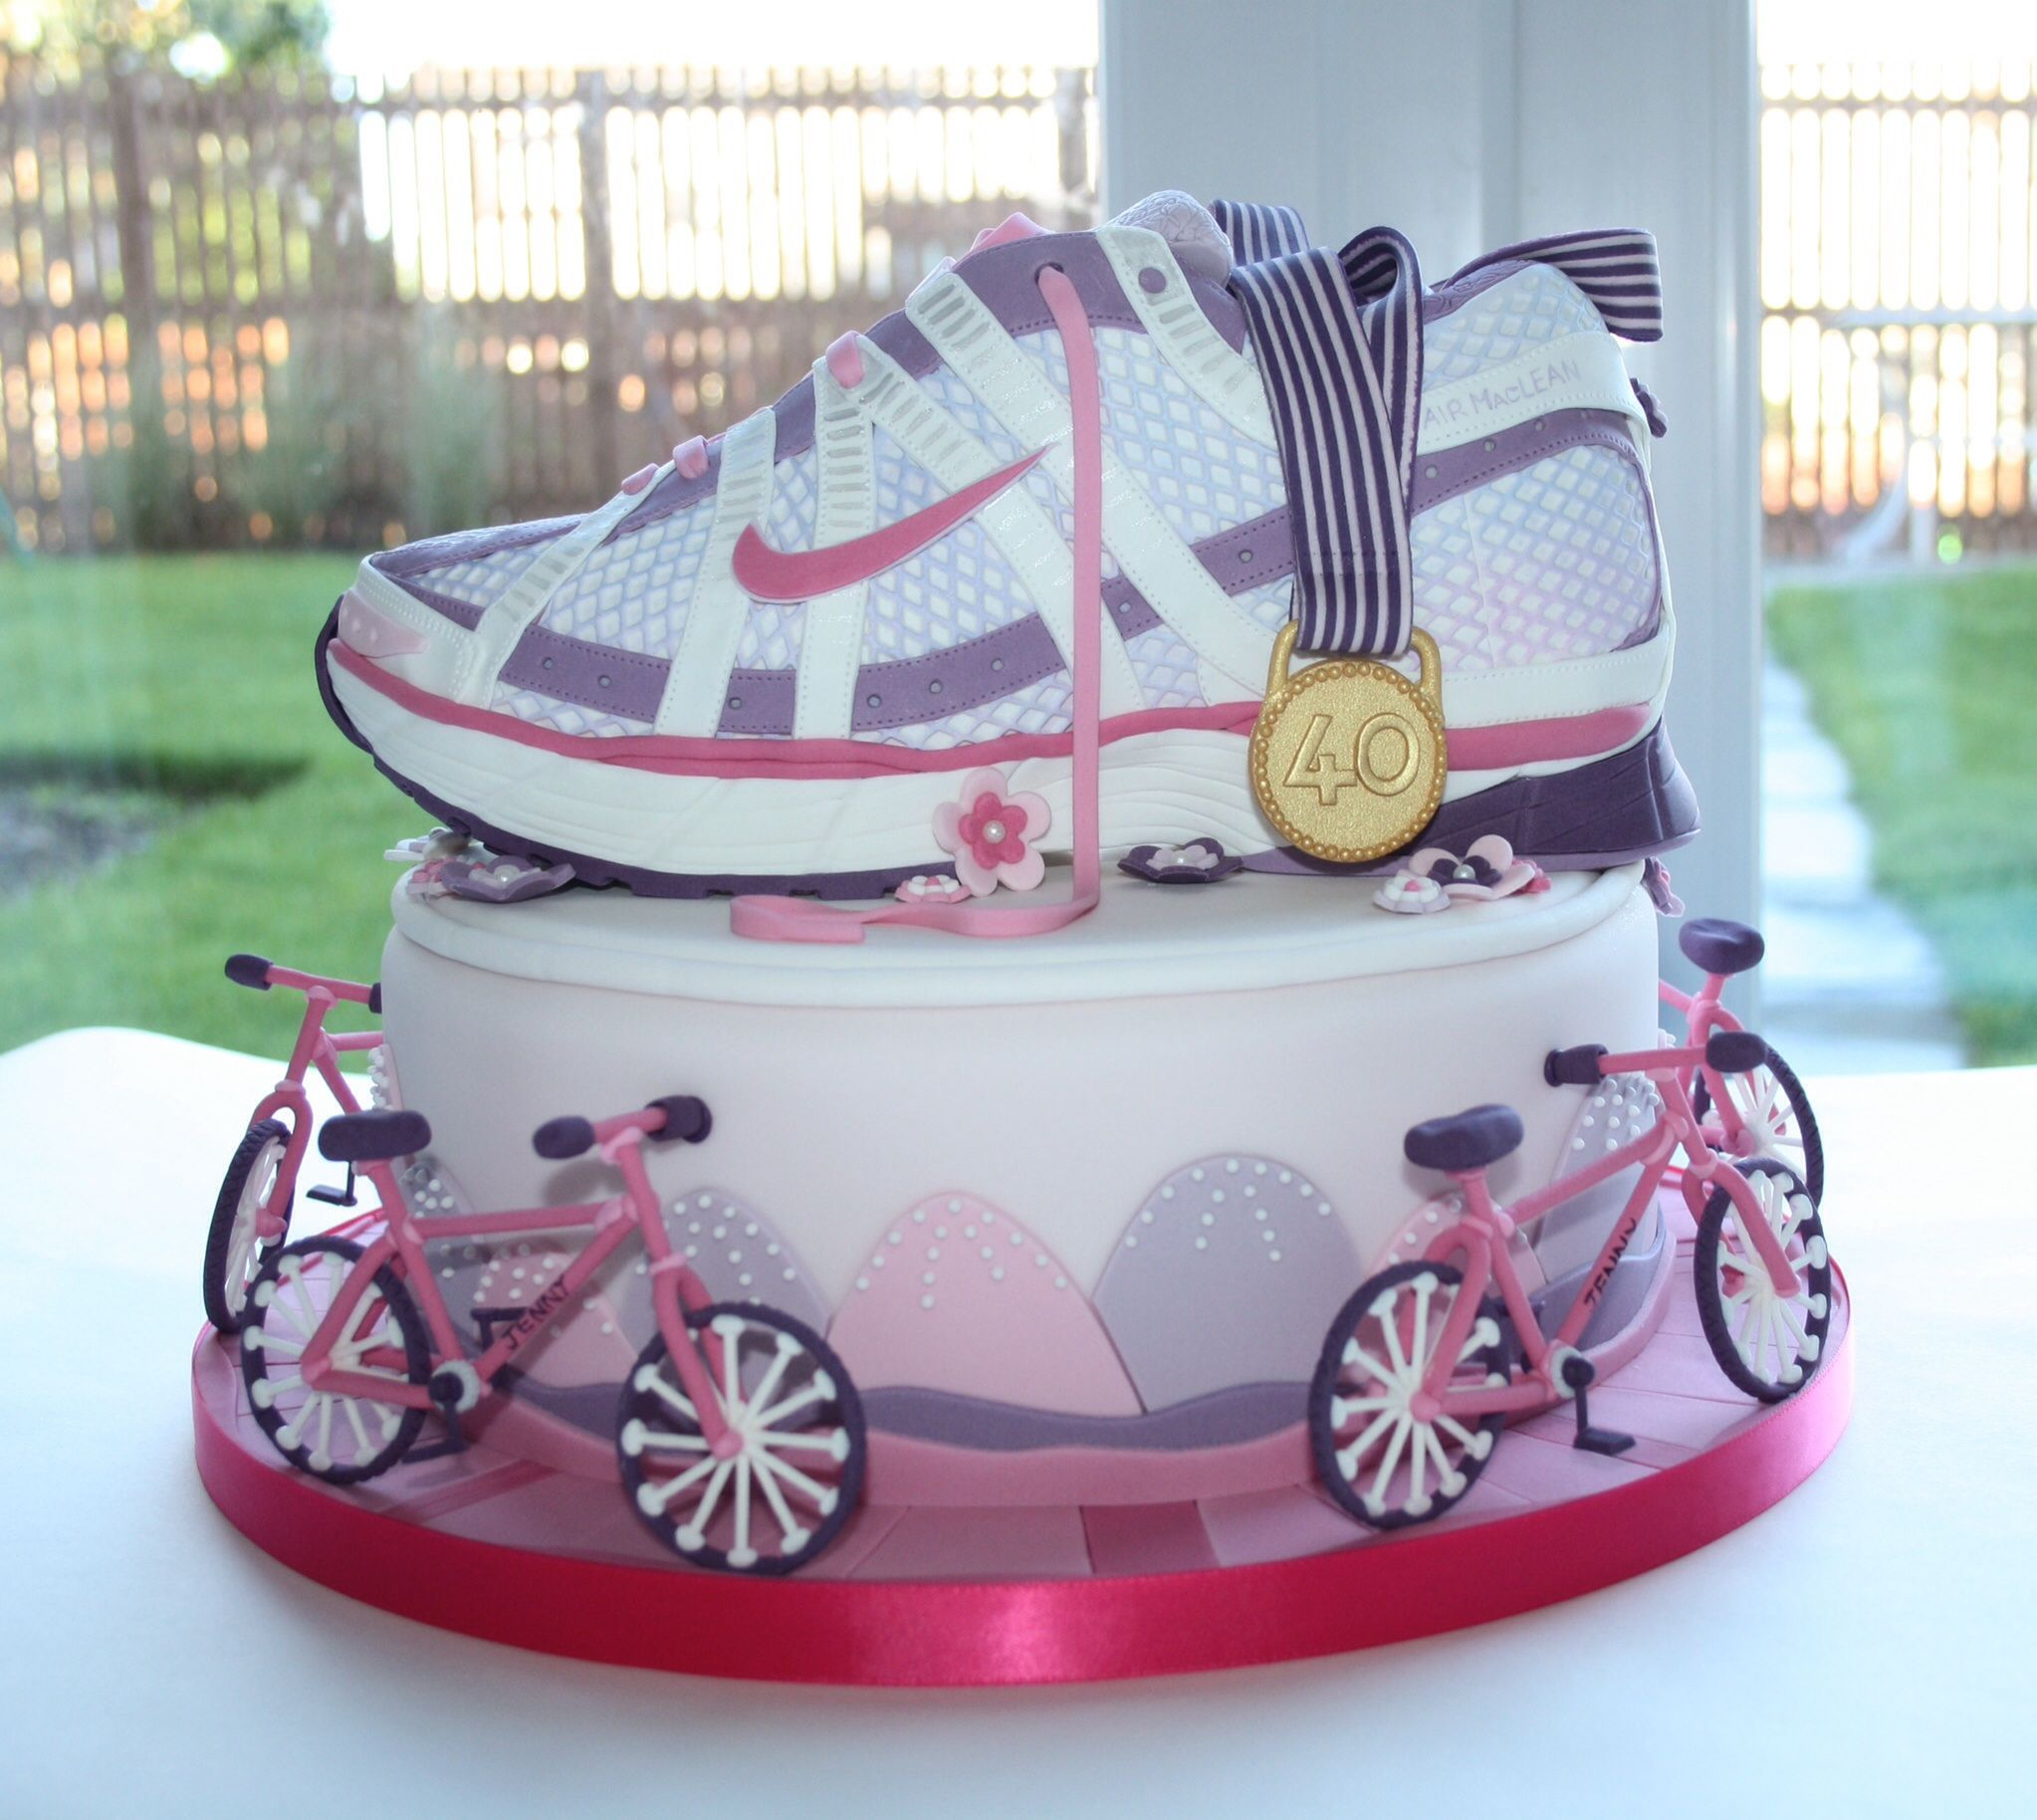 I Made This Ladies Running Shoe Trainer Cake For My Friends 40th